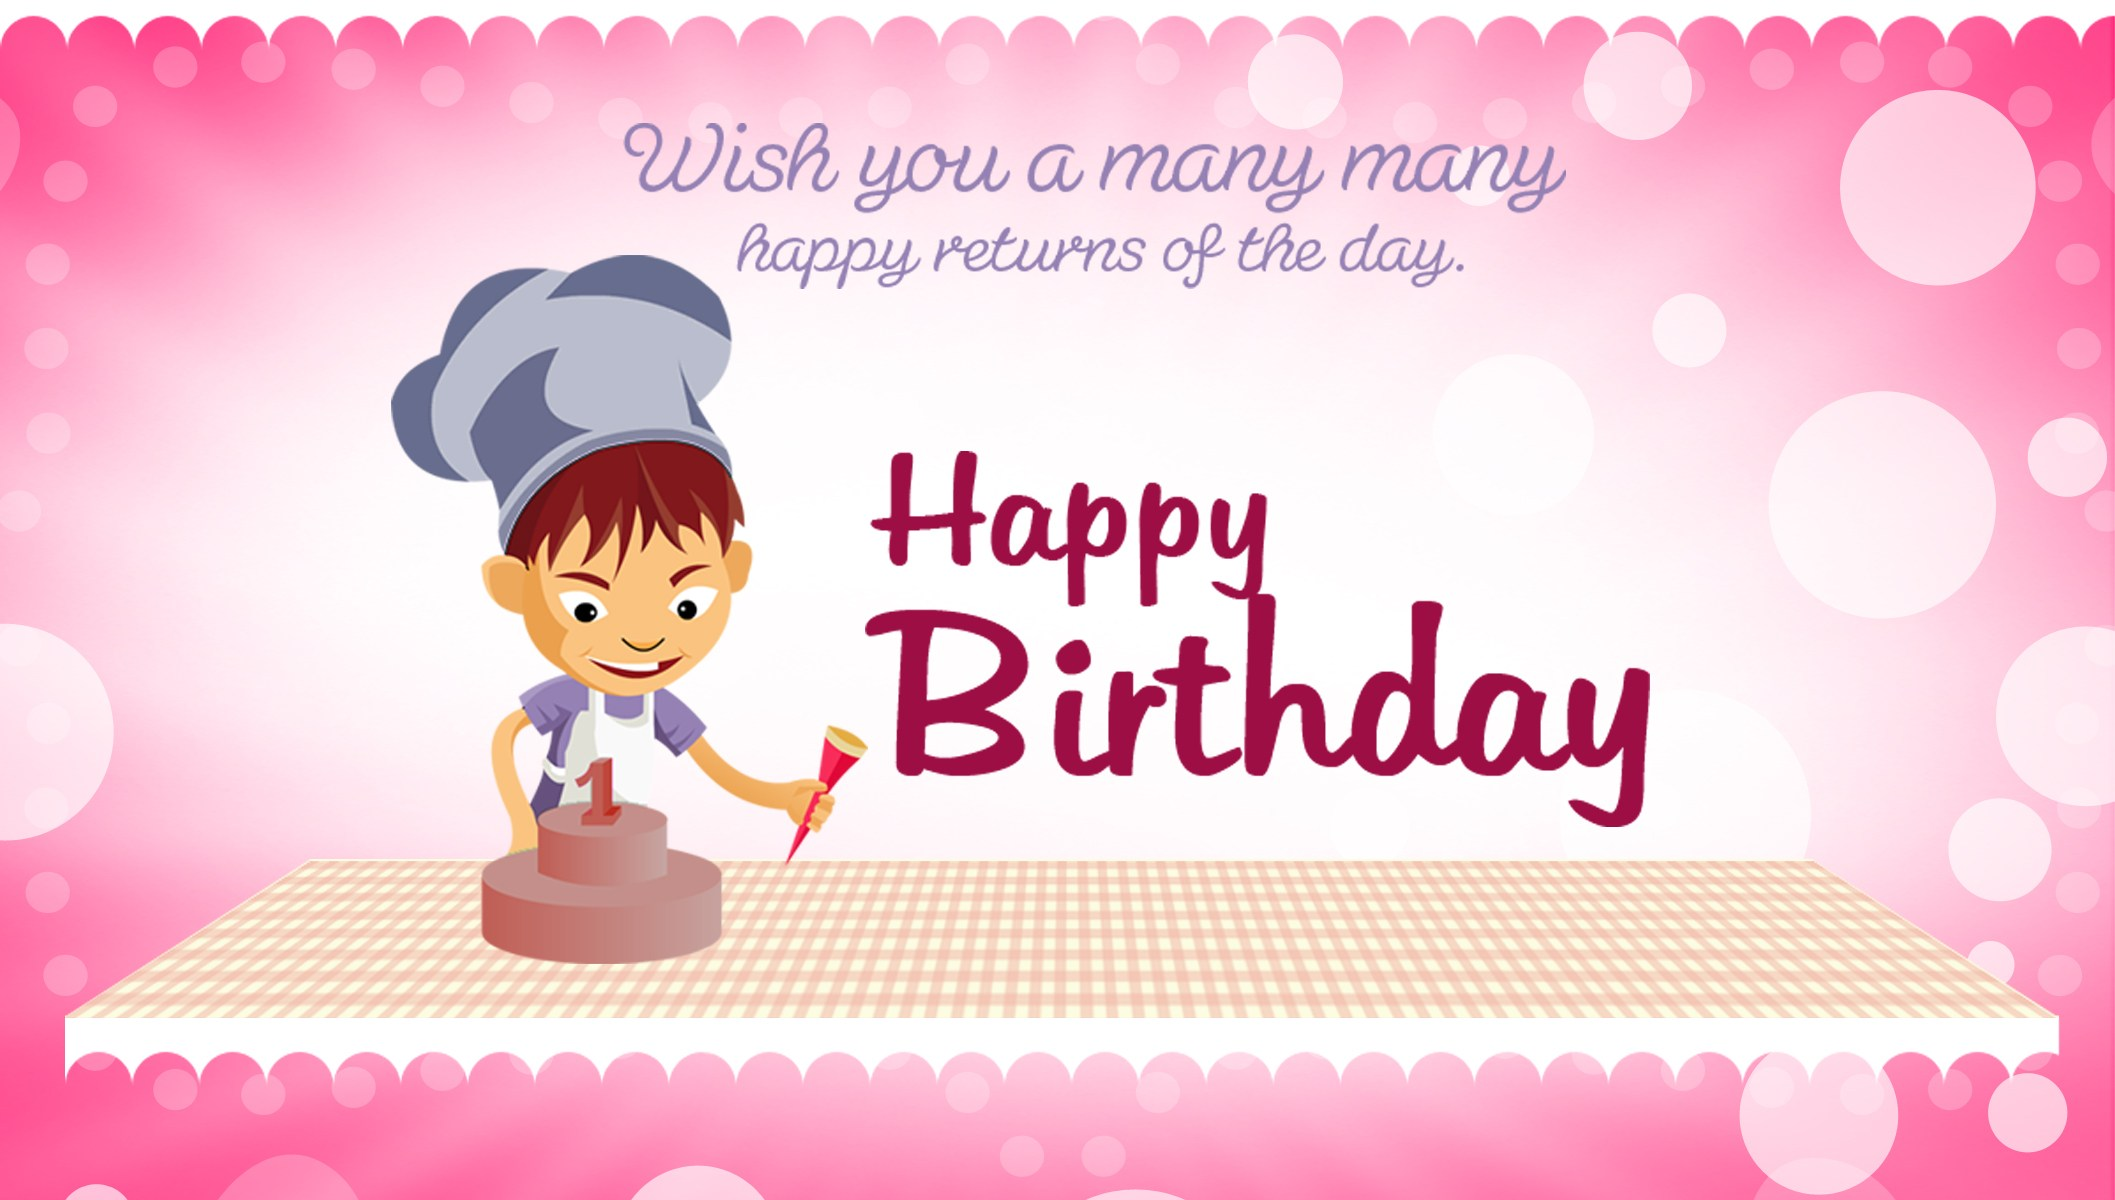 happy birthday quotes images download ; Happy-Birthday-Wishes-Messages-For-Boyfriend-and-Girlfriend-2